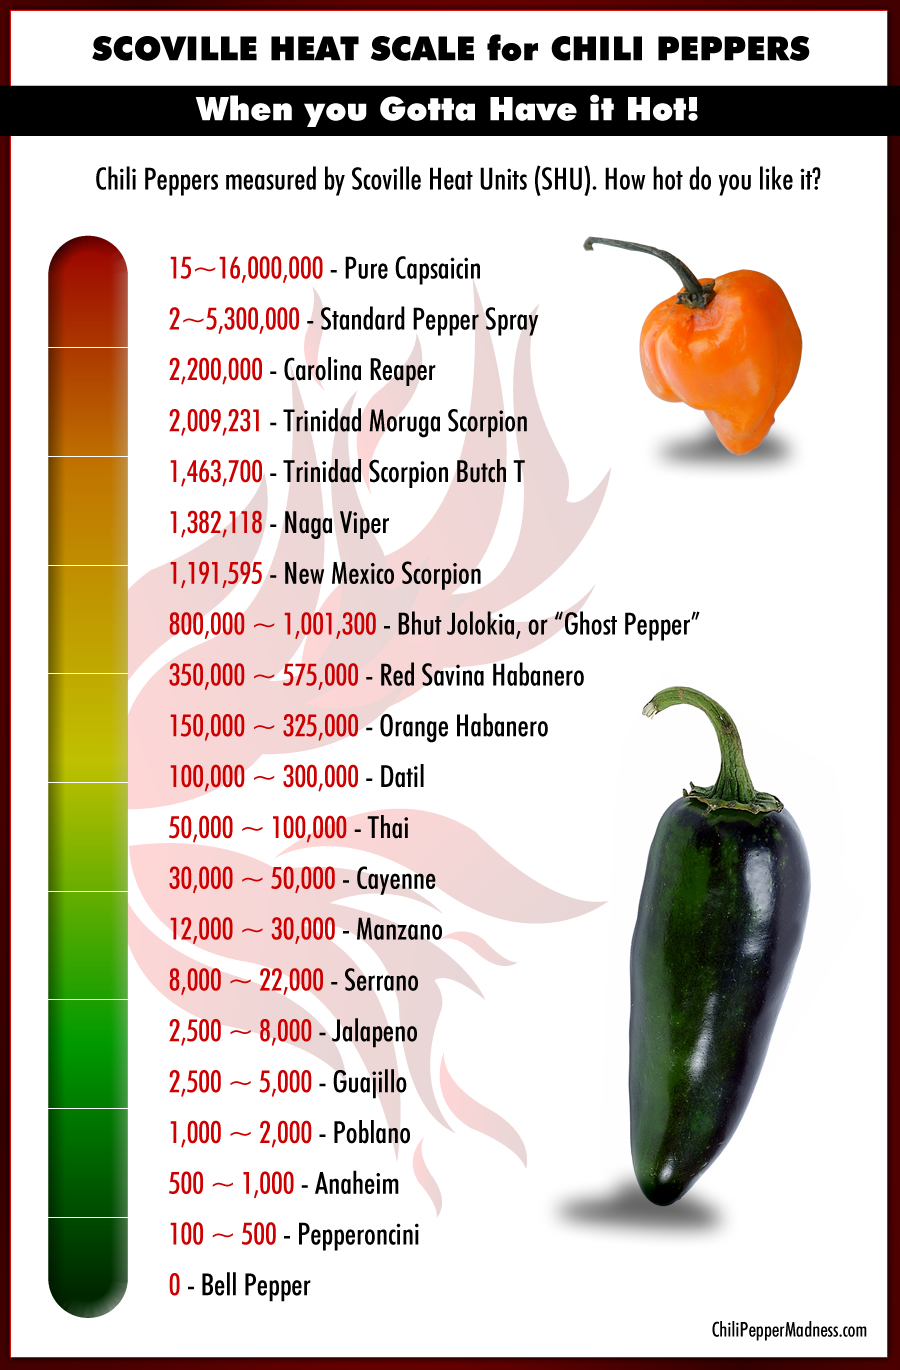 The Scoville Scale of Chili Peppers List from Hottest to Mildest